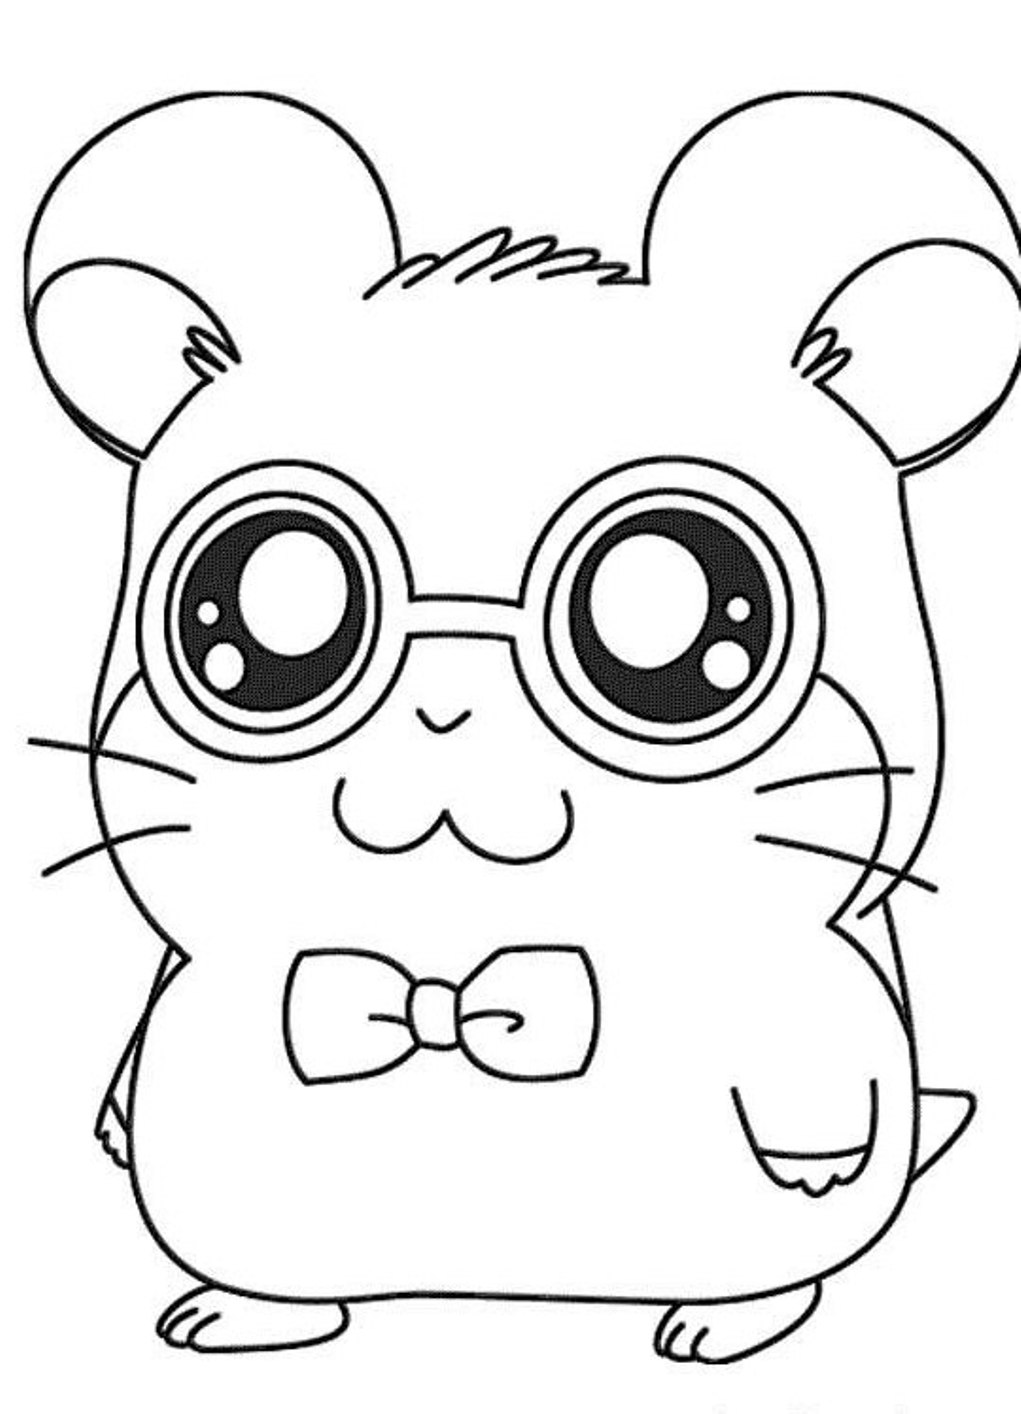 1021x1414 Cosy Cute Coloring Pages Of Animals For Adults Baby To Print Owls